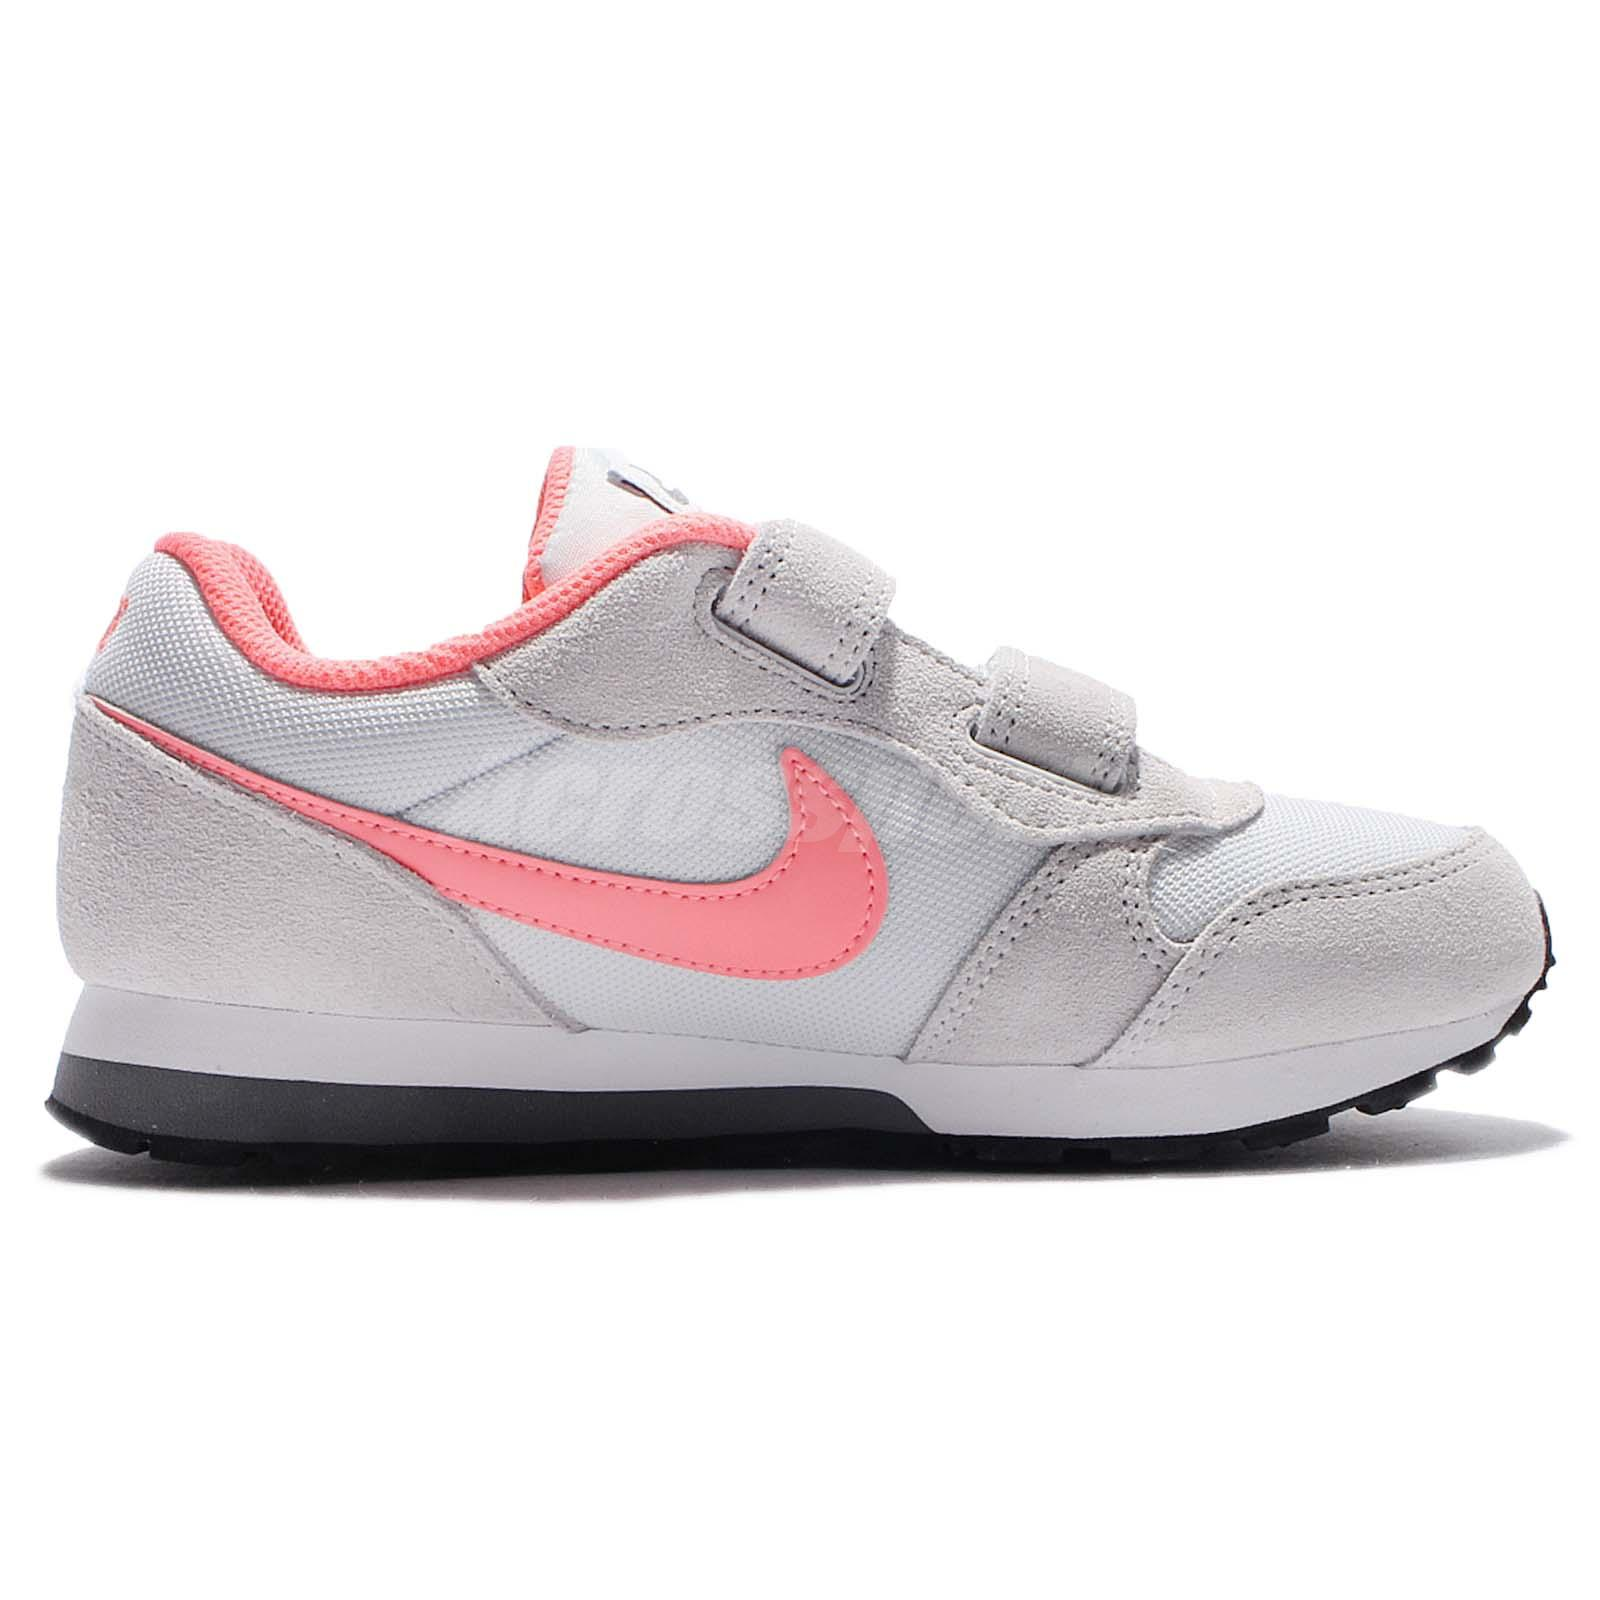 Nike Shoes Glowing Grey Color Grey Nike Running Shoes  8e16afa13